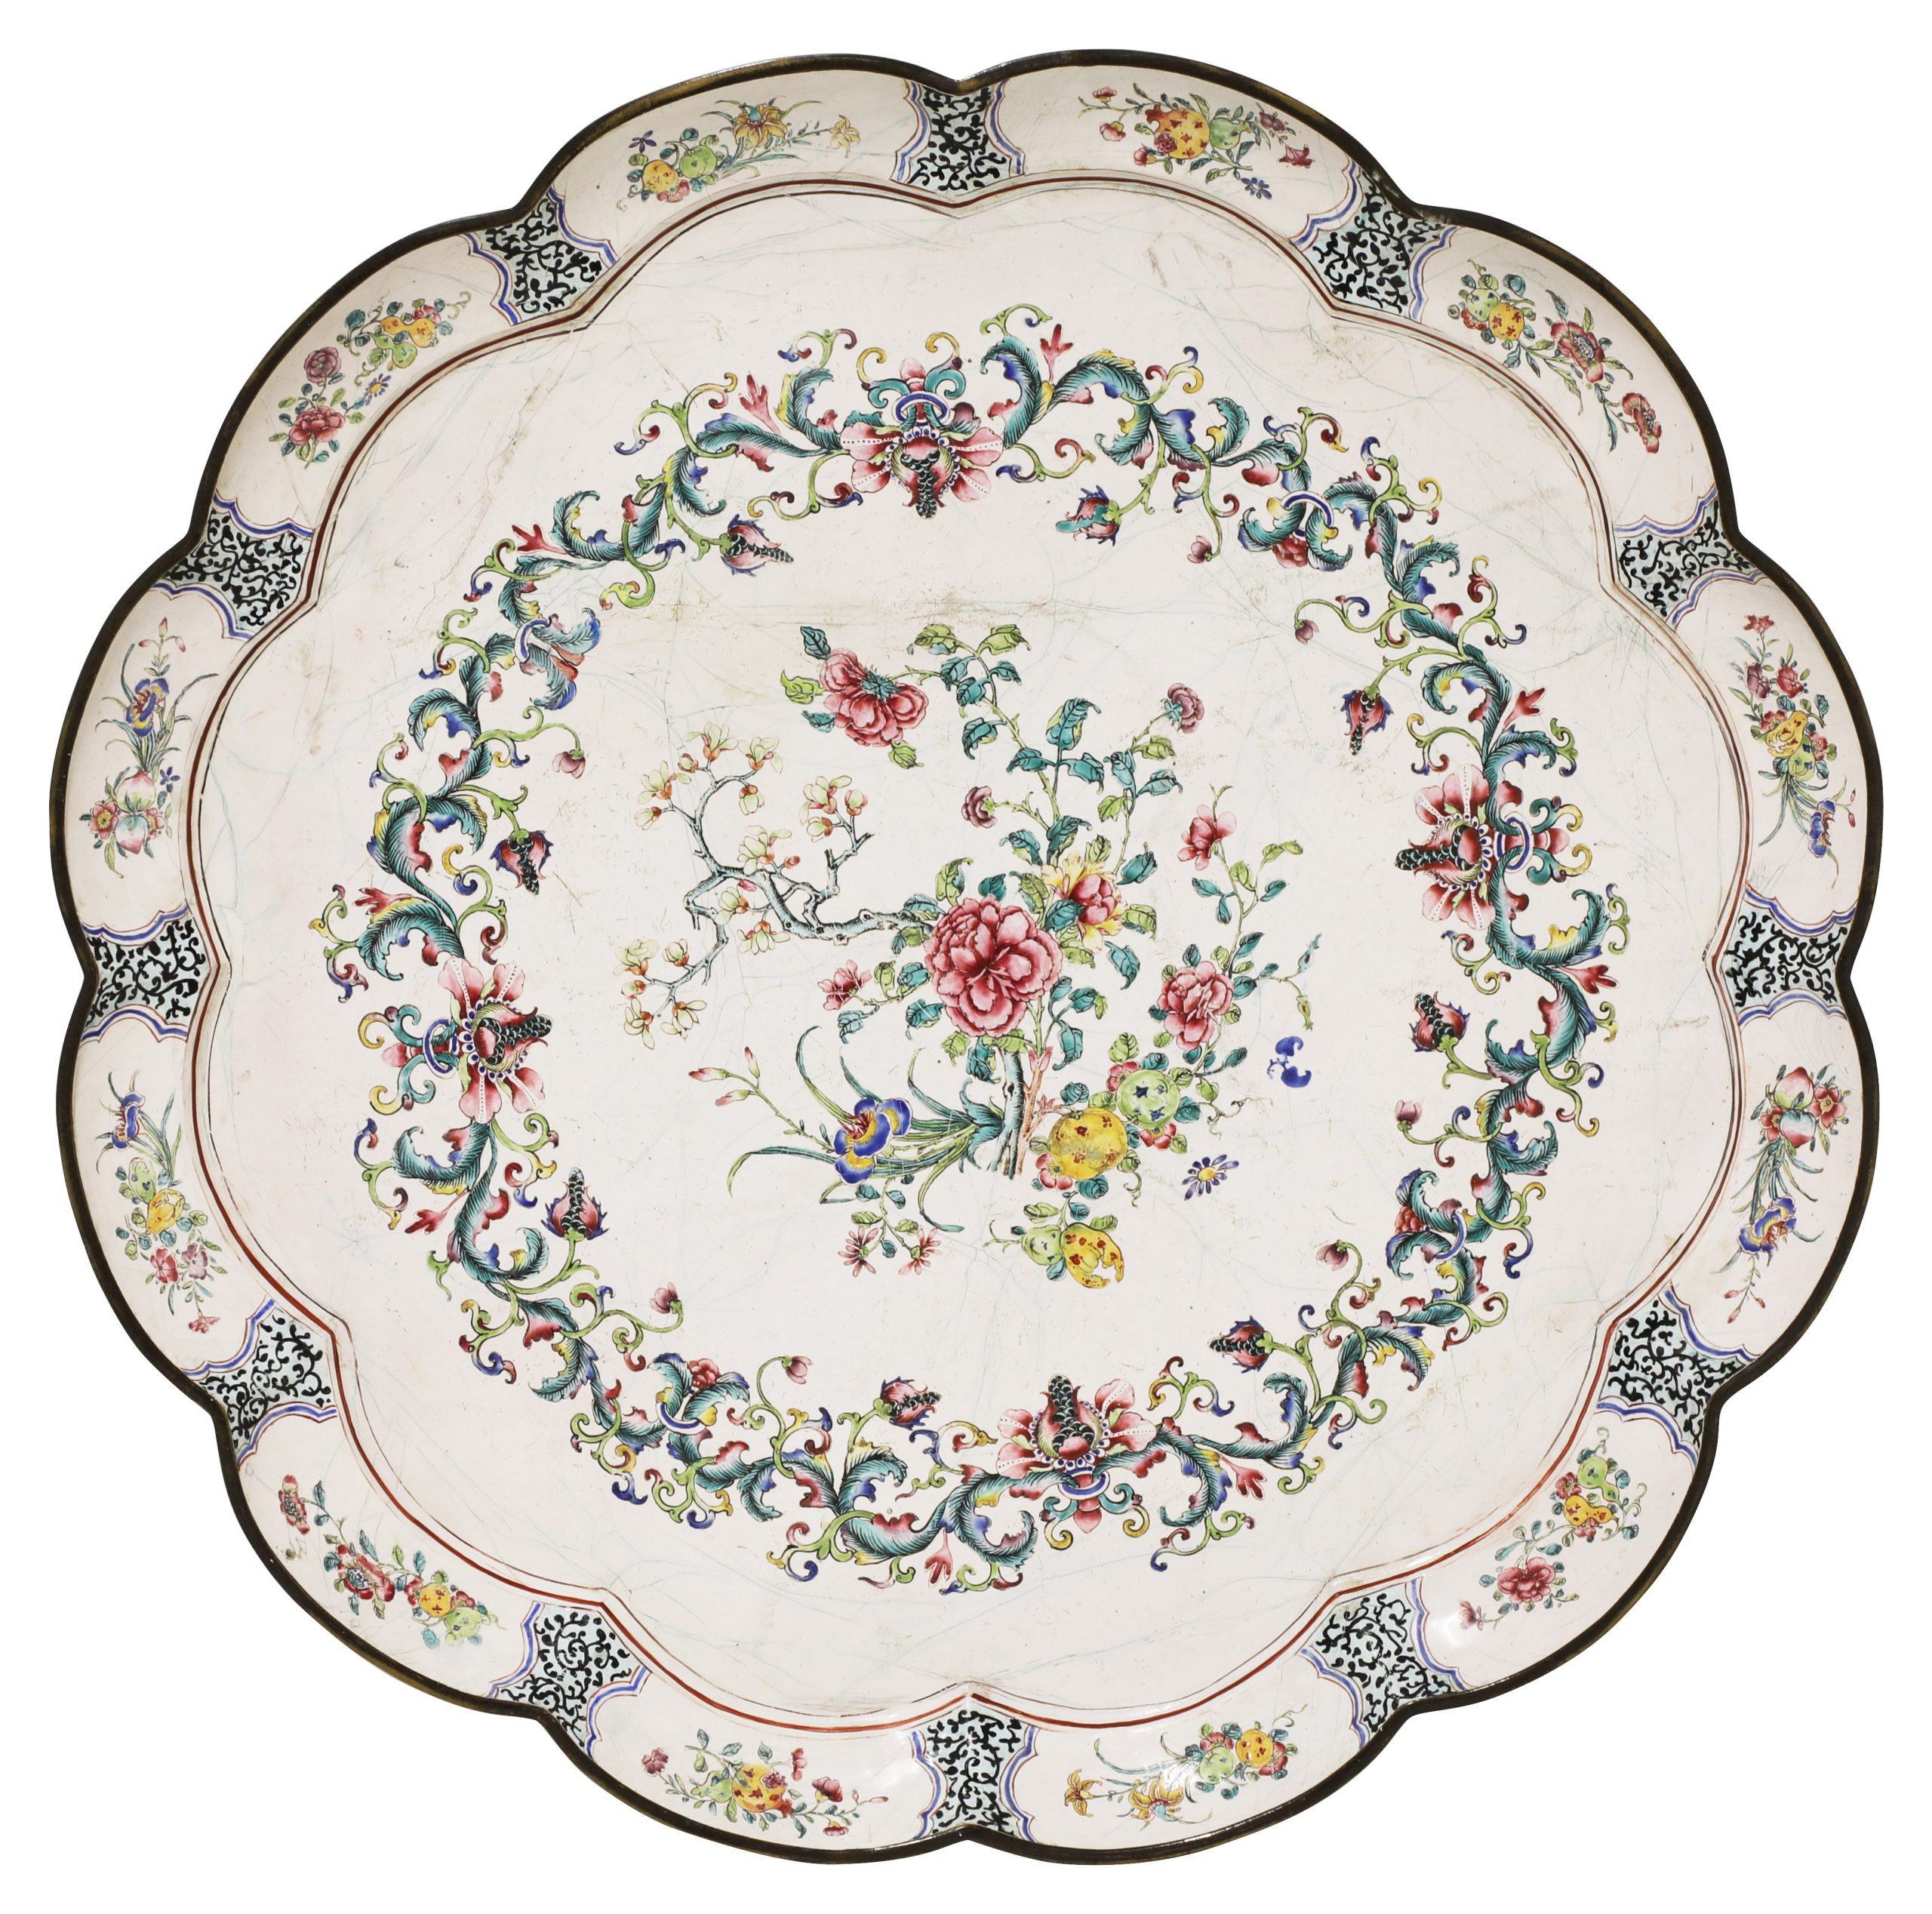 Of lobed form, the centre painted with a bouquet of blossoming peony, magnolia and finger citrons, enclosed within a border of scrolling foliage, the sides with further flower and fruit sprays in shaped panels between stylised block foliate scrolls, the reverse similarly decorated, 62.7cm diameter Provenance: Christie's, London, 14 May 2019, lot 111. 清十八世纪 铜胎画珐琅花果纹花口大盘